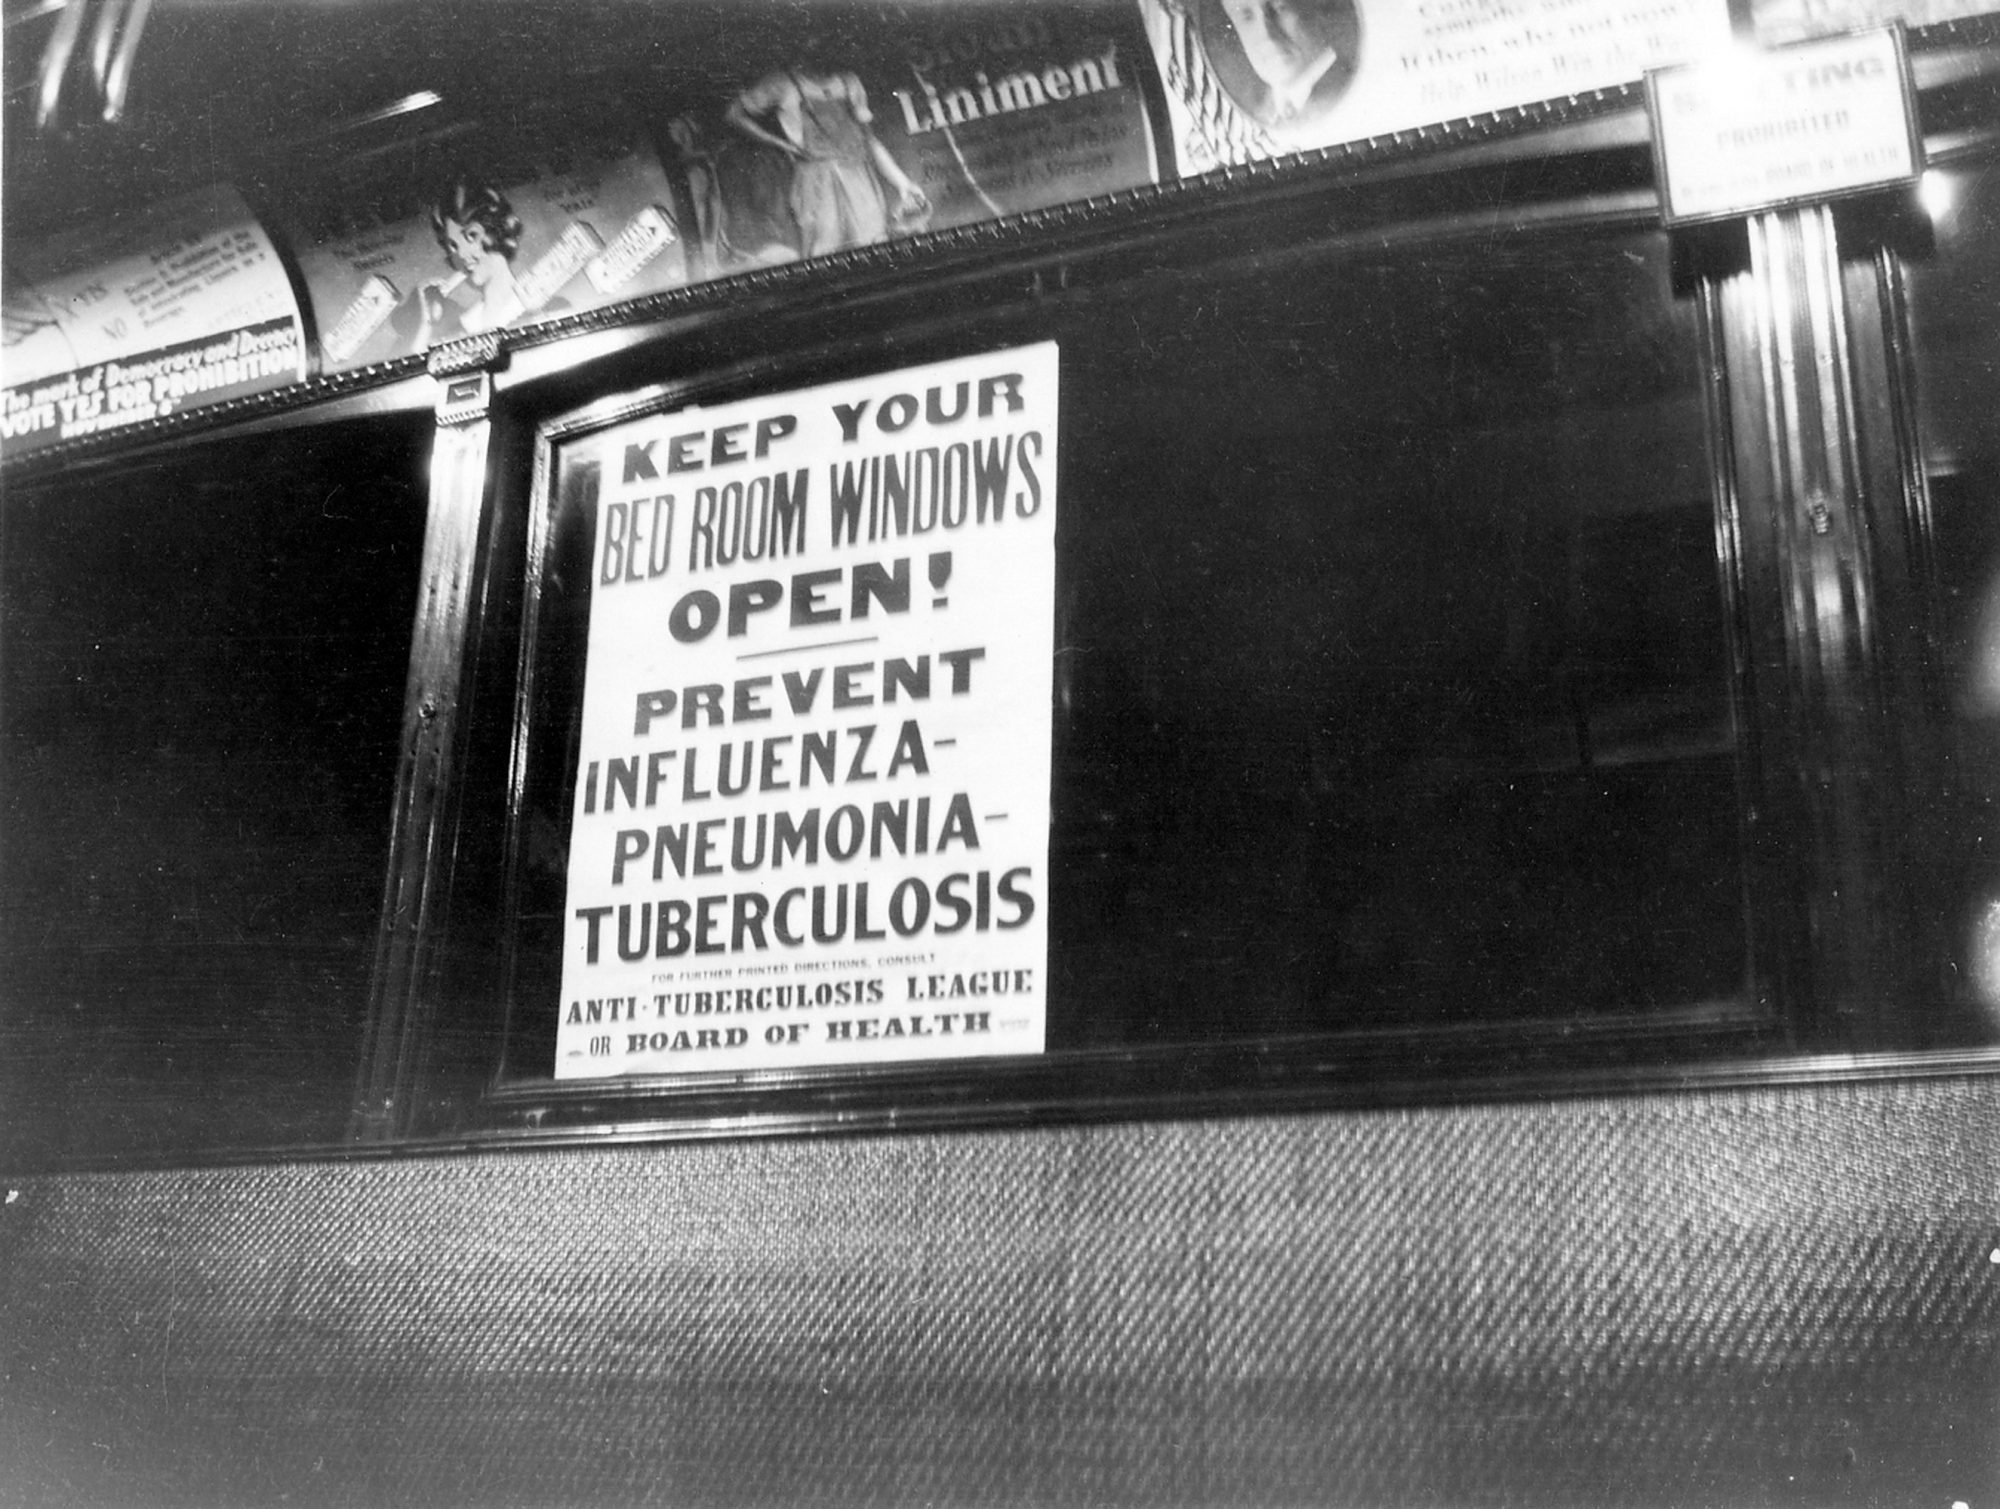 A post public health notice about the flu in a street car